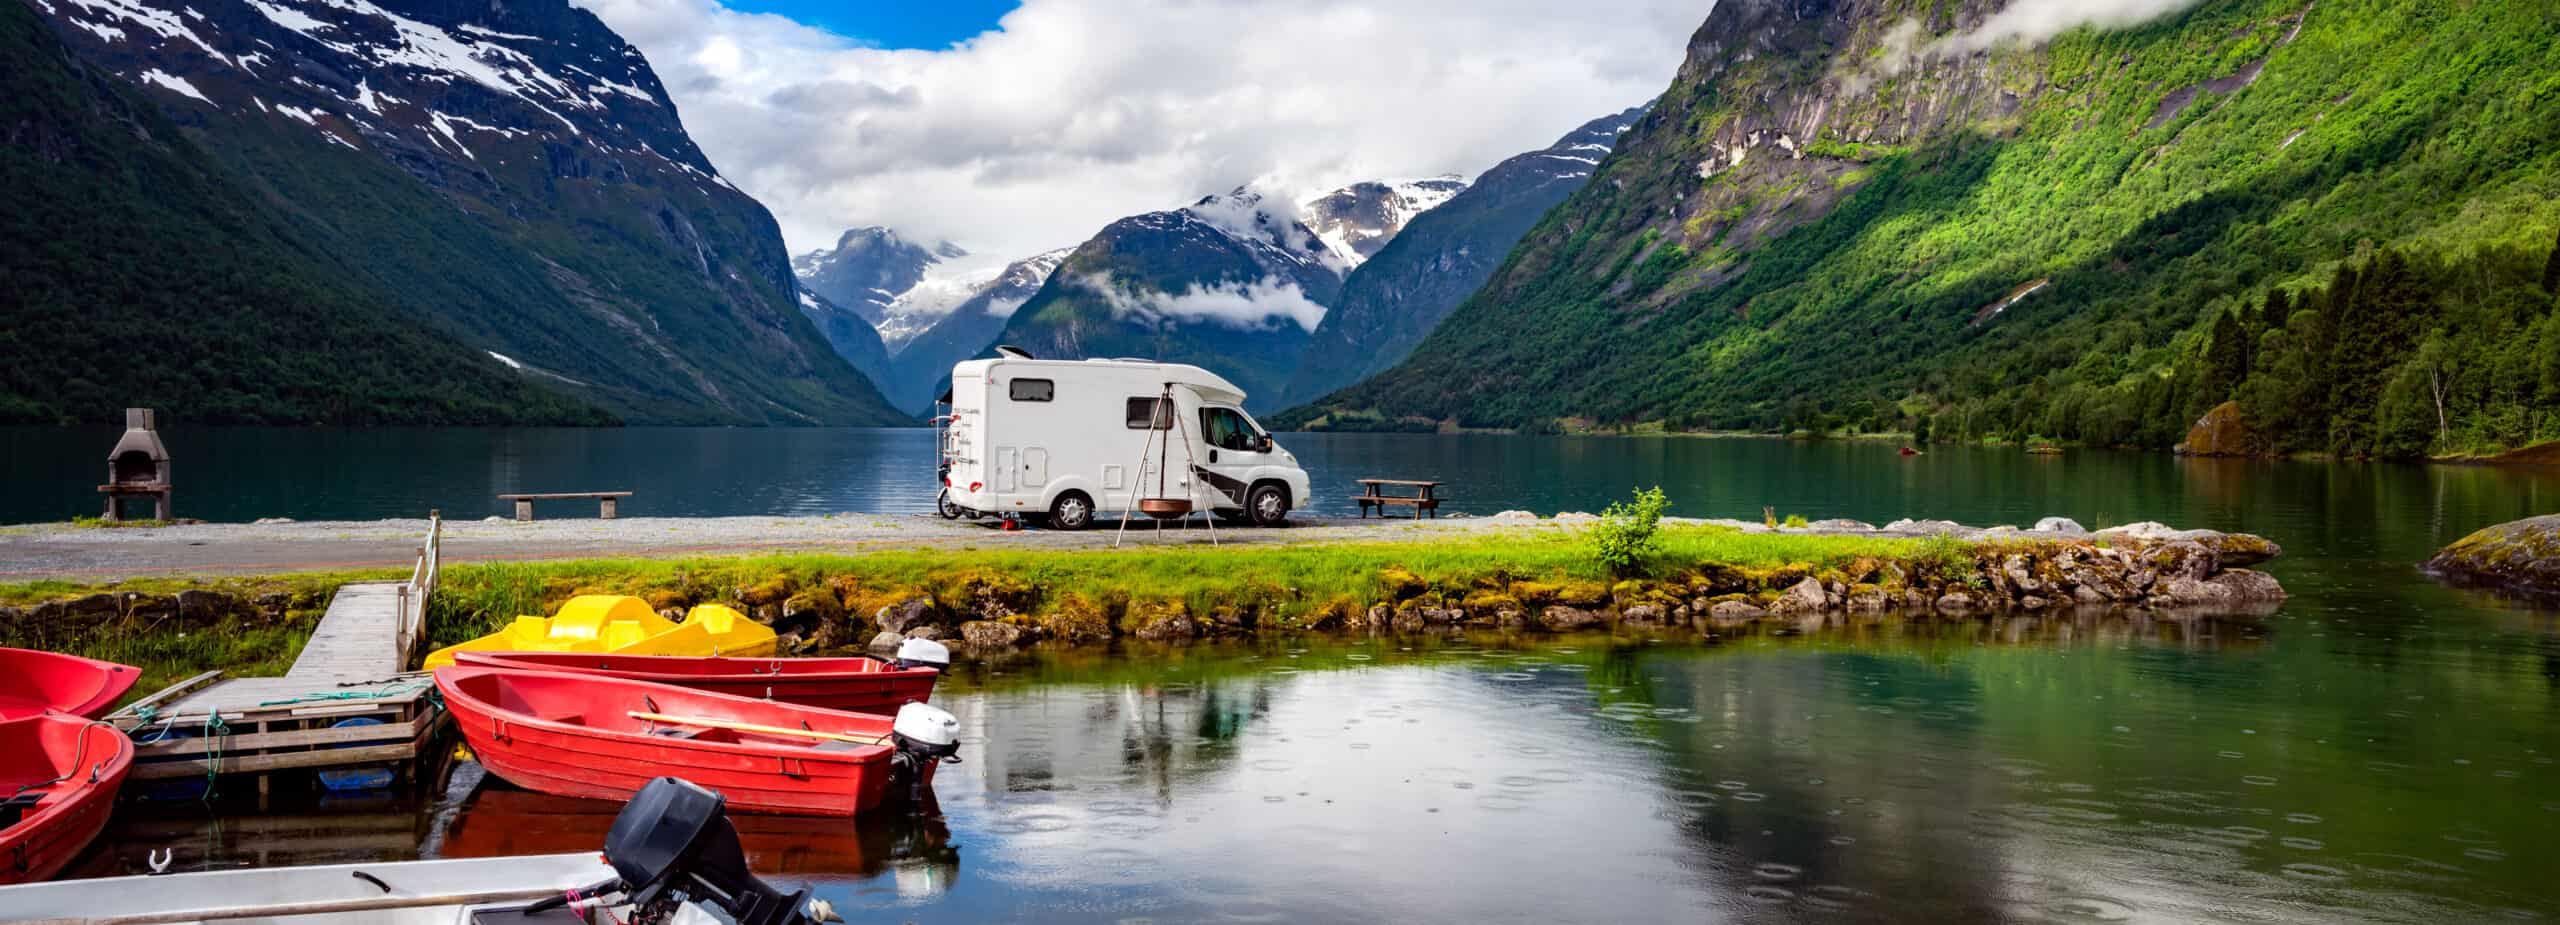 Motorhome parked by a lake surrounded by mountains